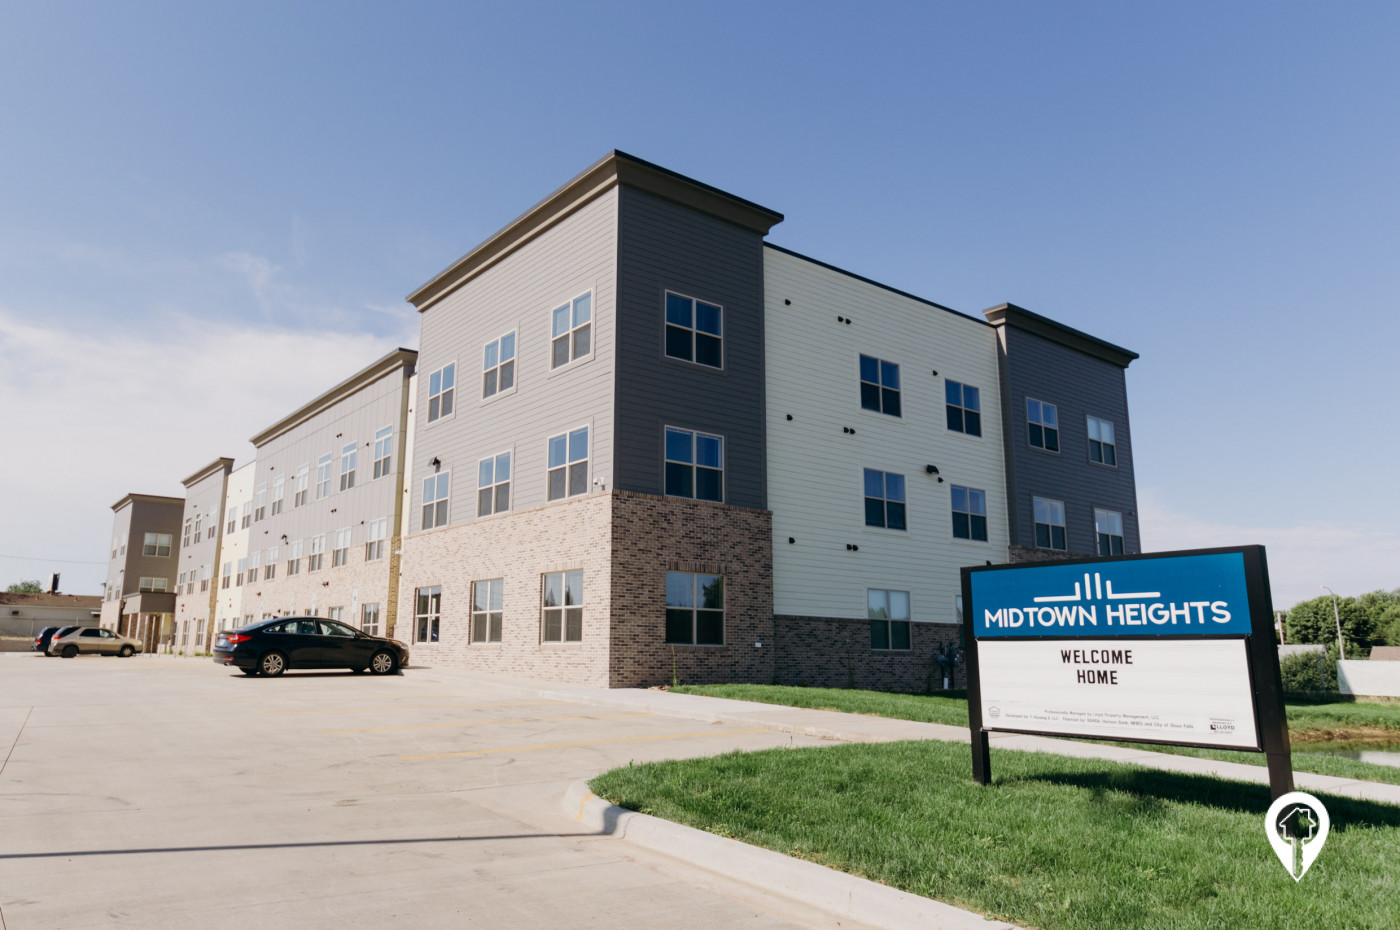 Lloyd Property Management - Midtown Heights Apartments